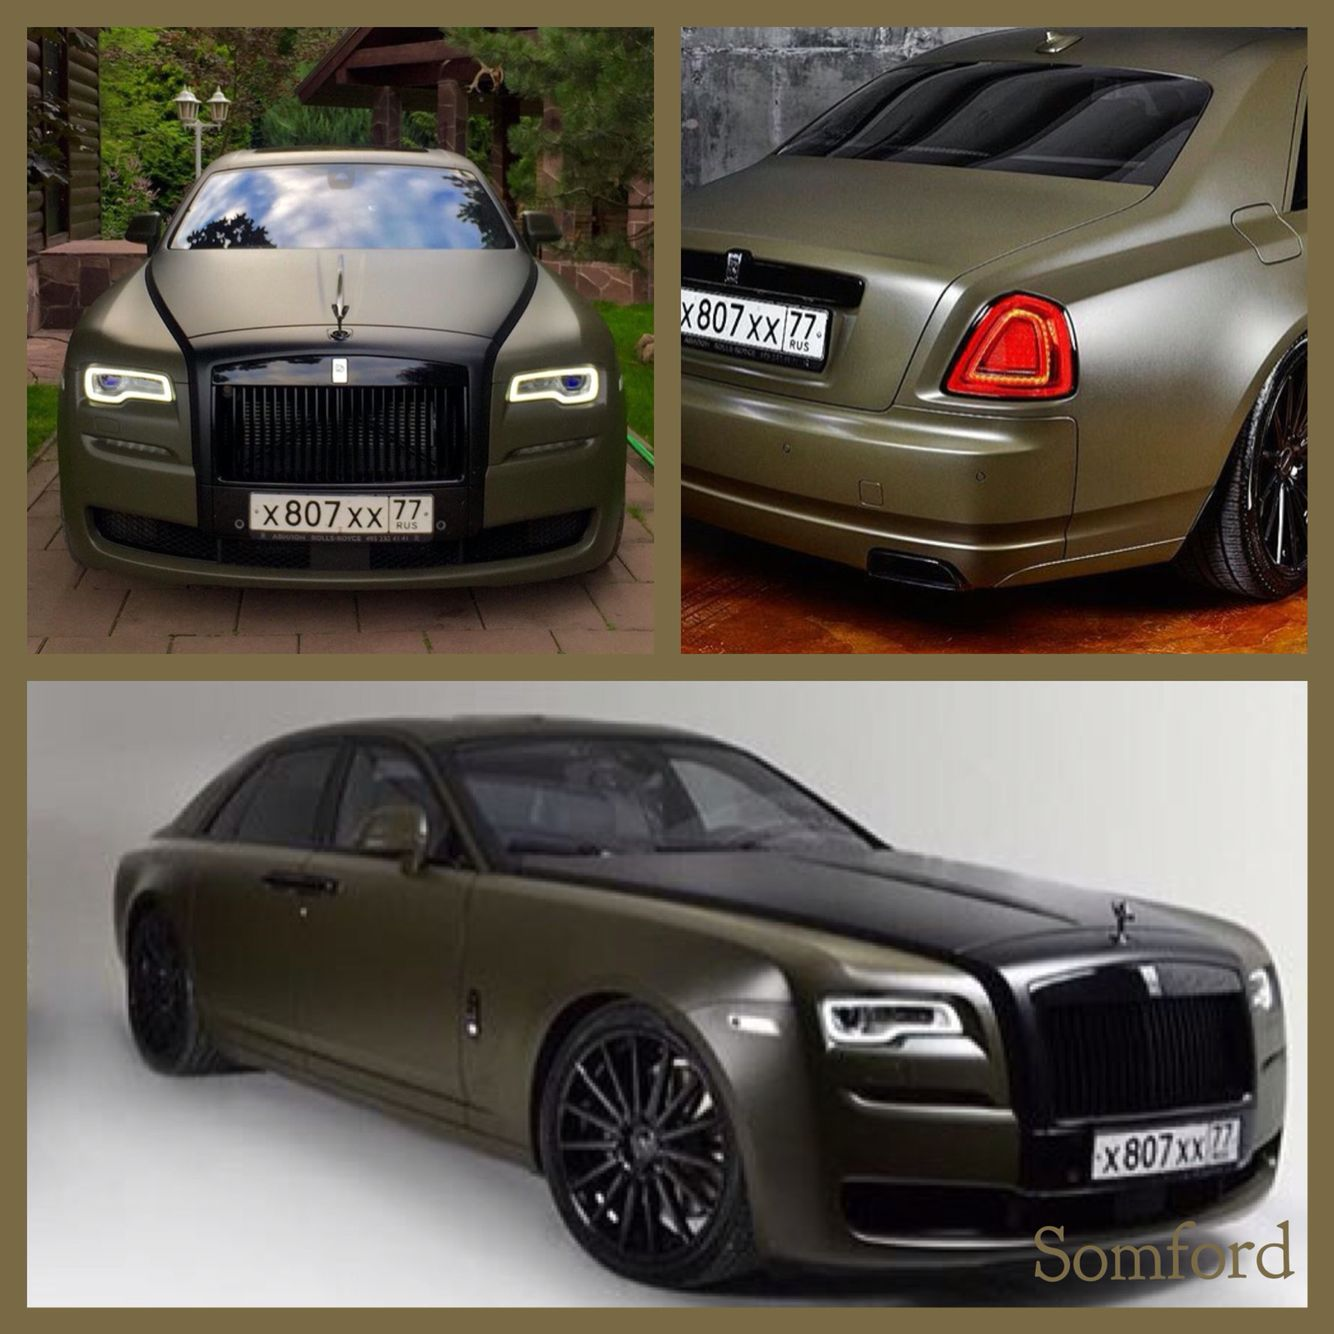 Stunning Rolls Royce Ghost II series with excellent color ...